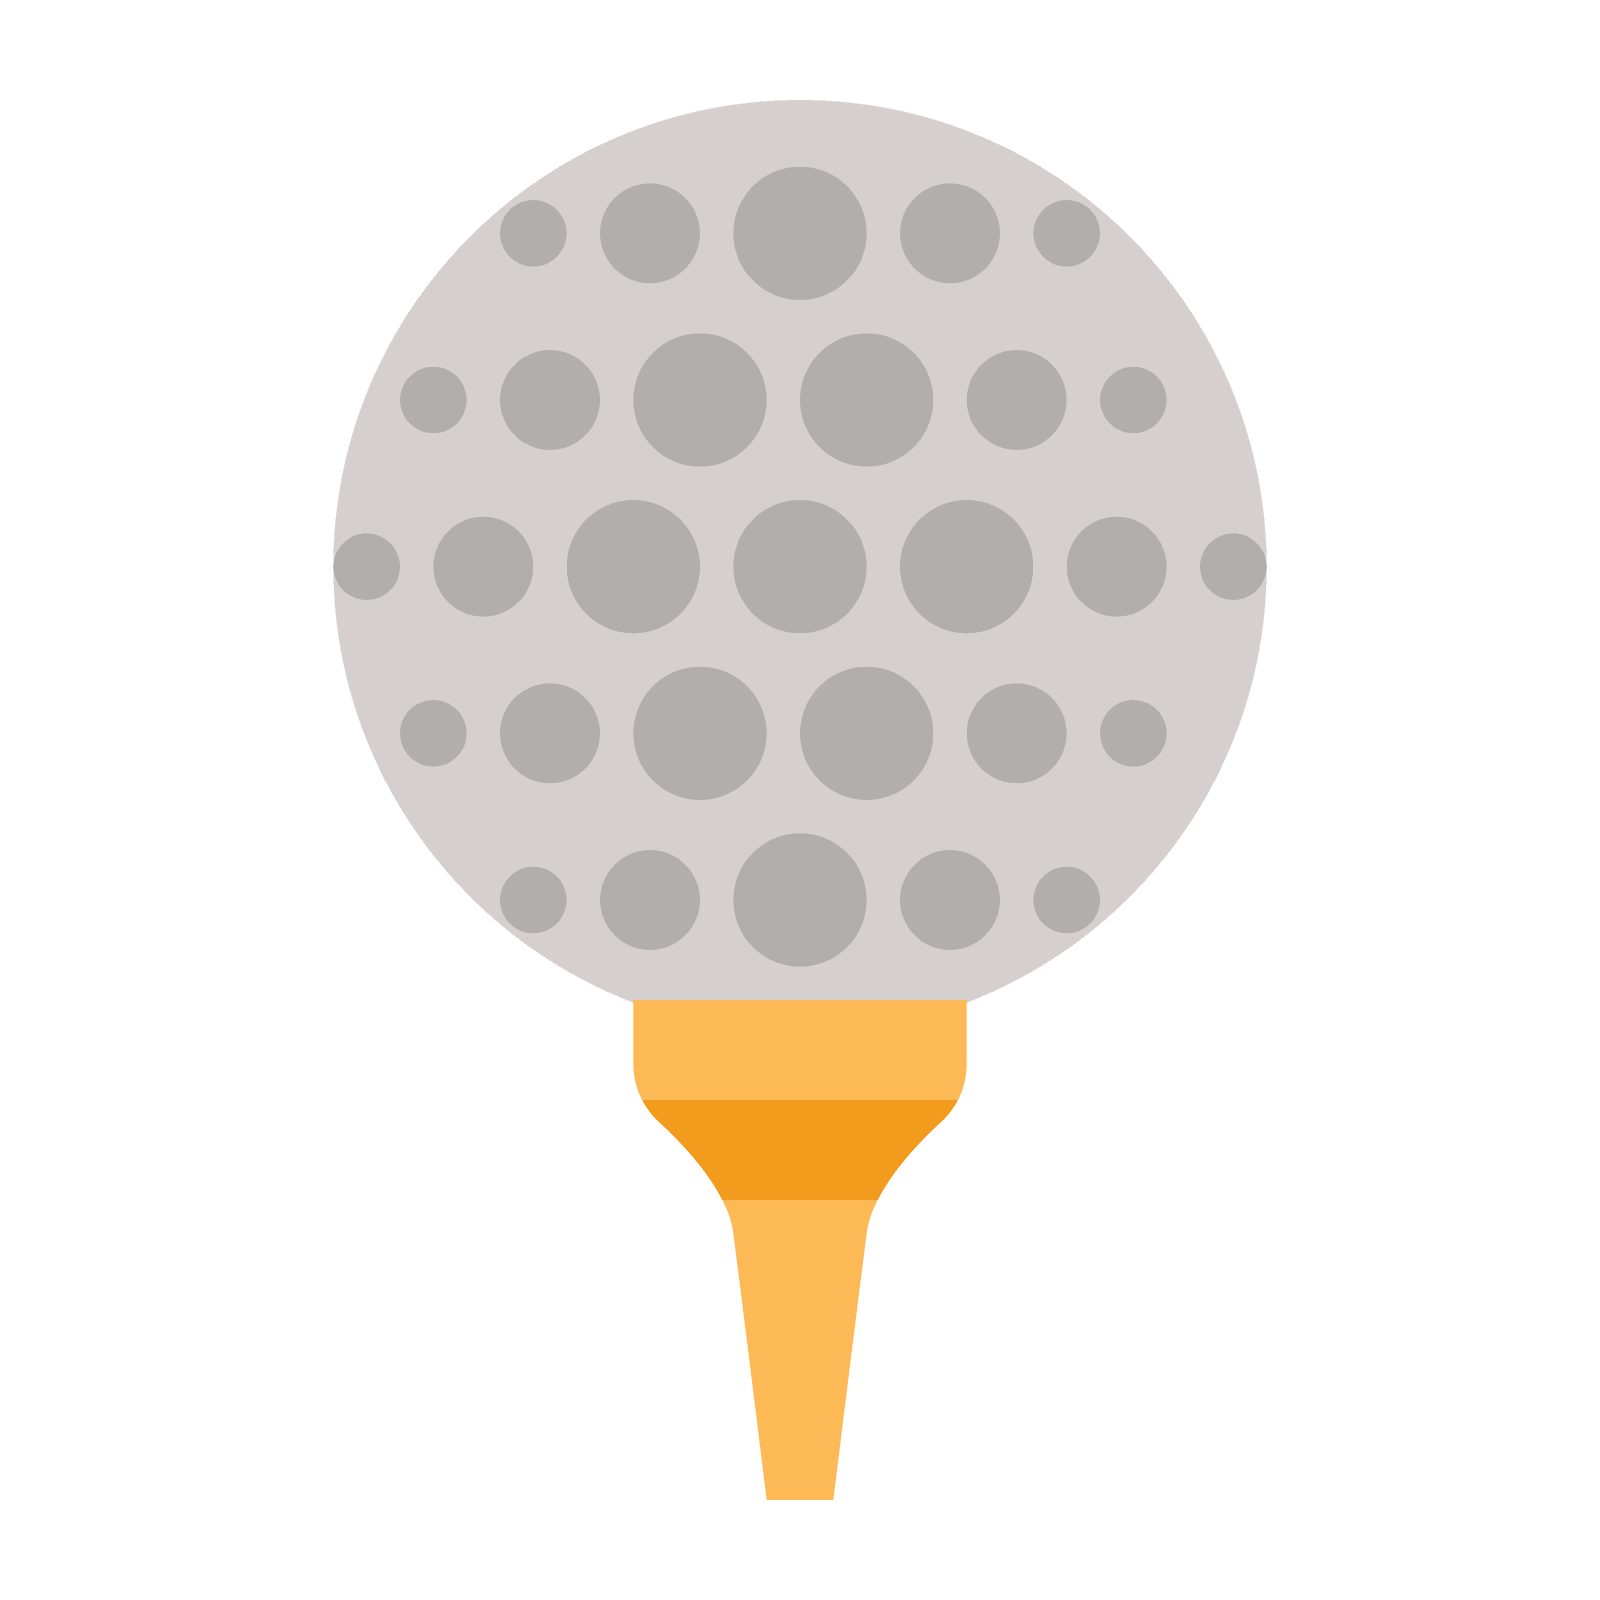 Golfball vector. Golf ball icono descarga